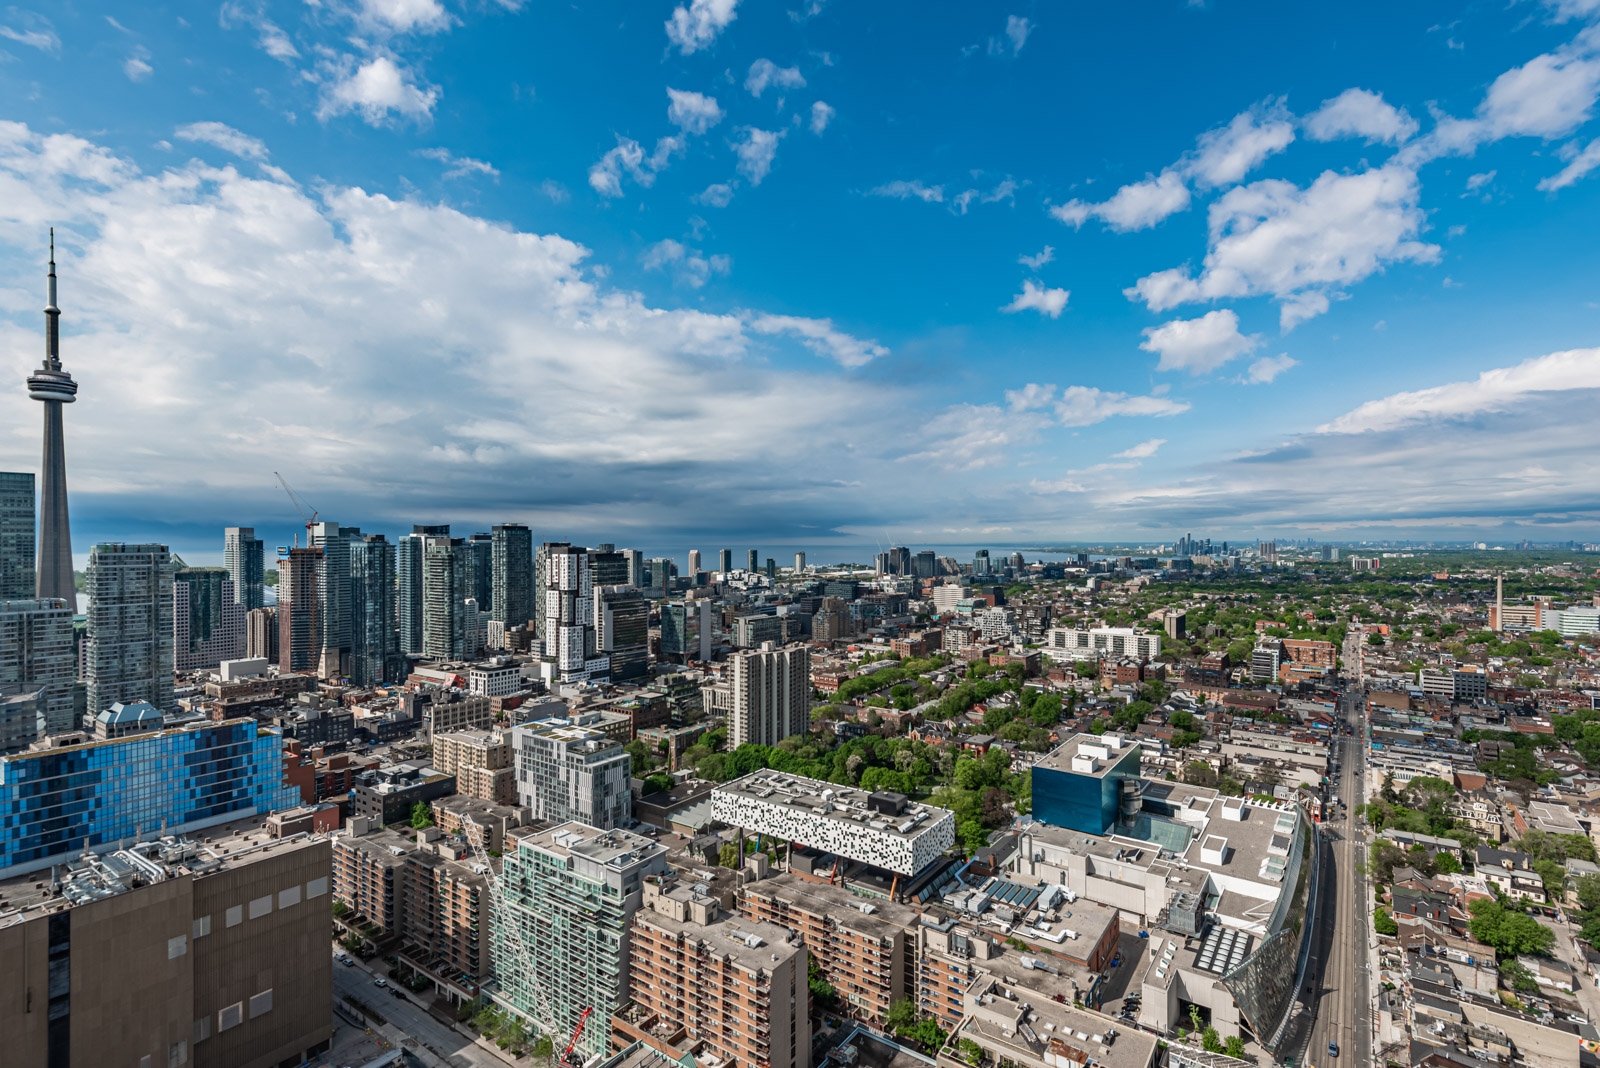 Daytime view of CN Tower, OCAD and Lake Ontario from 488 University Ave Unit 3410 balcony.